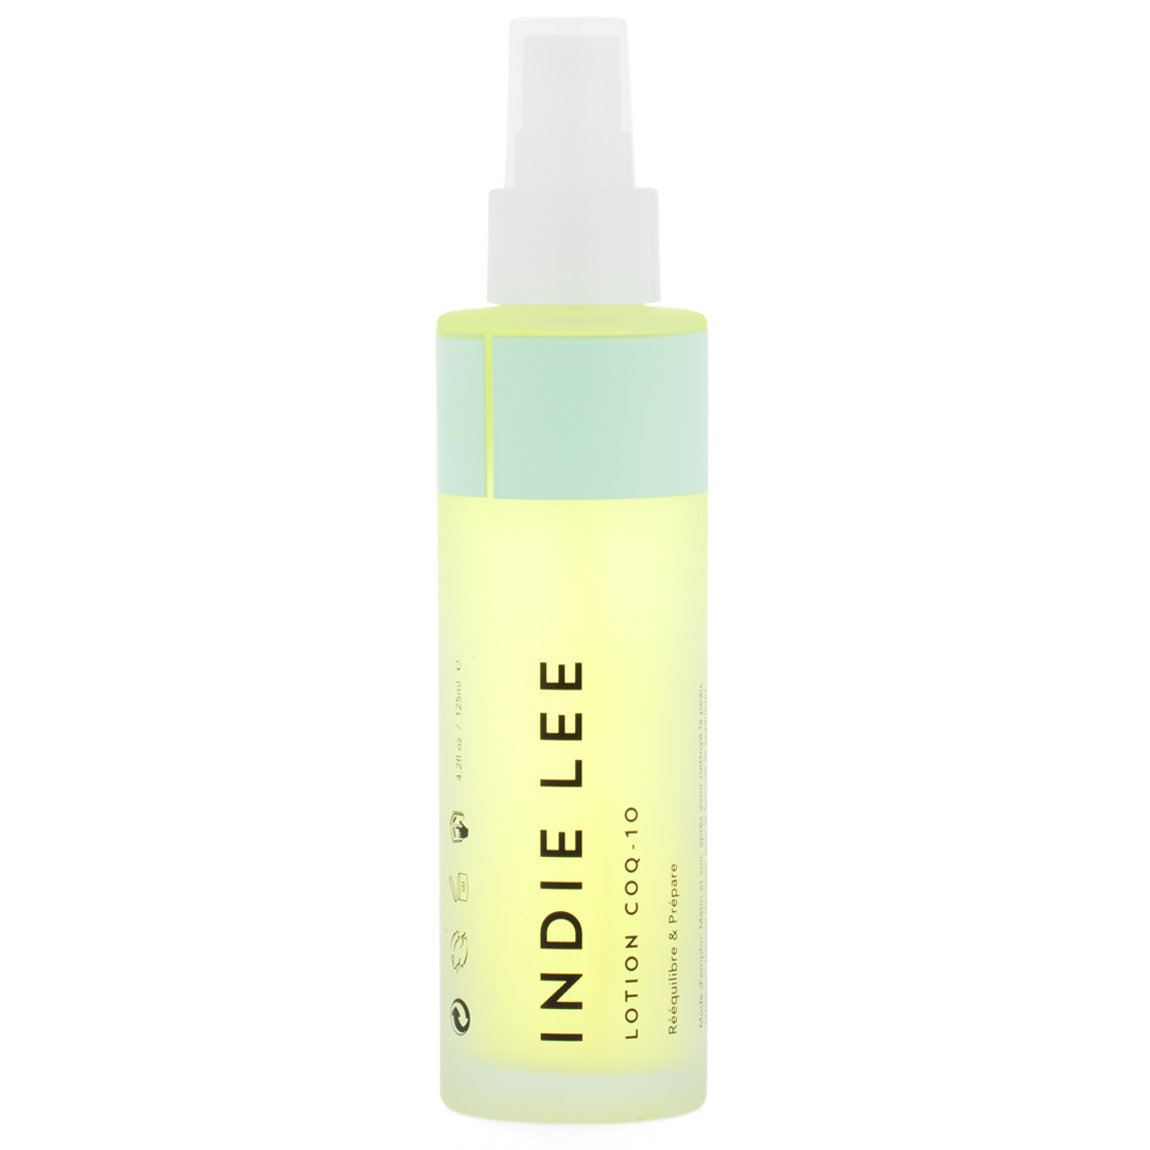 Indie Lee CoQ-10 Toner 125 ml alternative view 1.